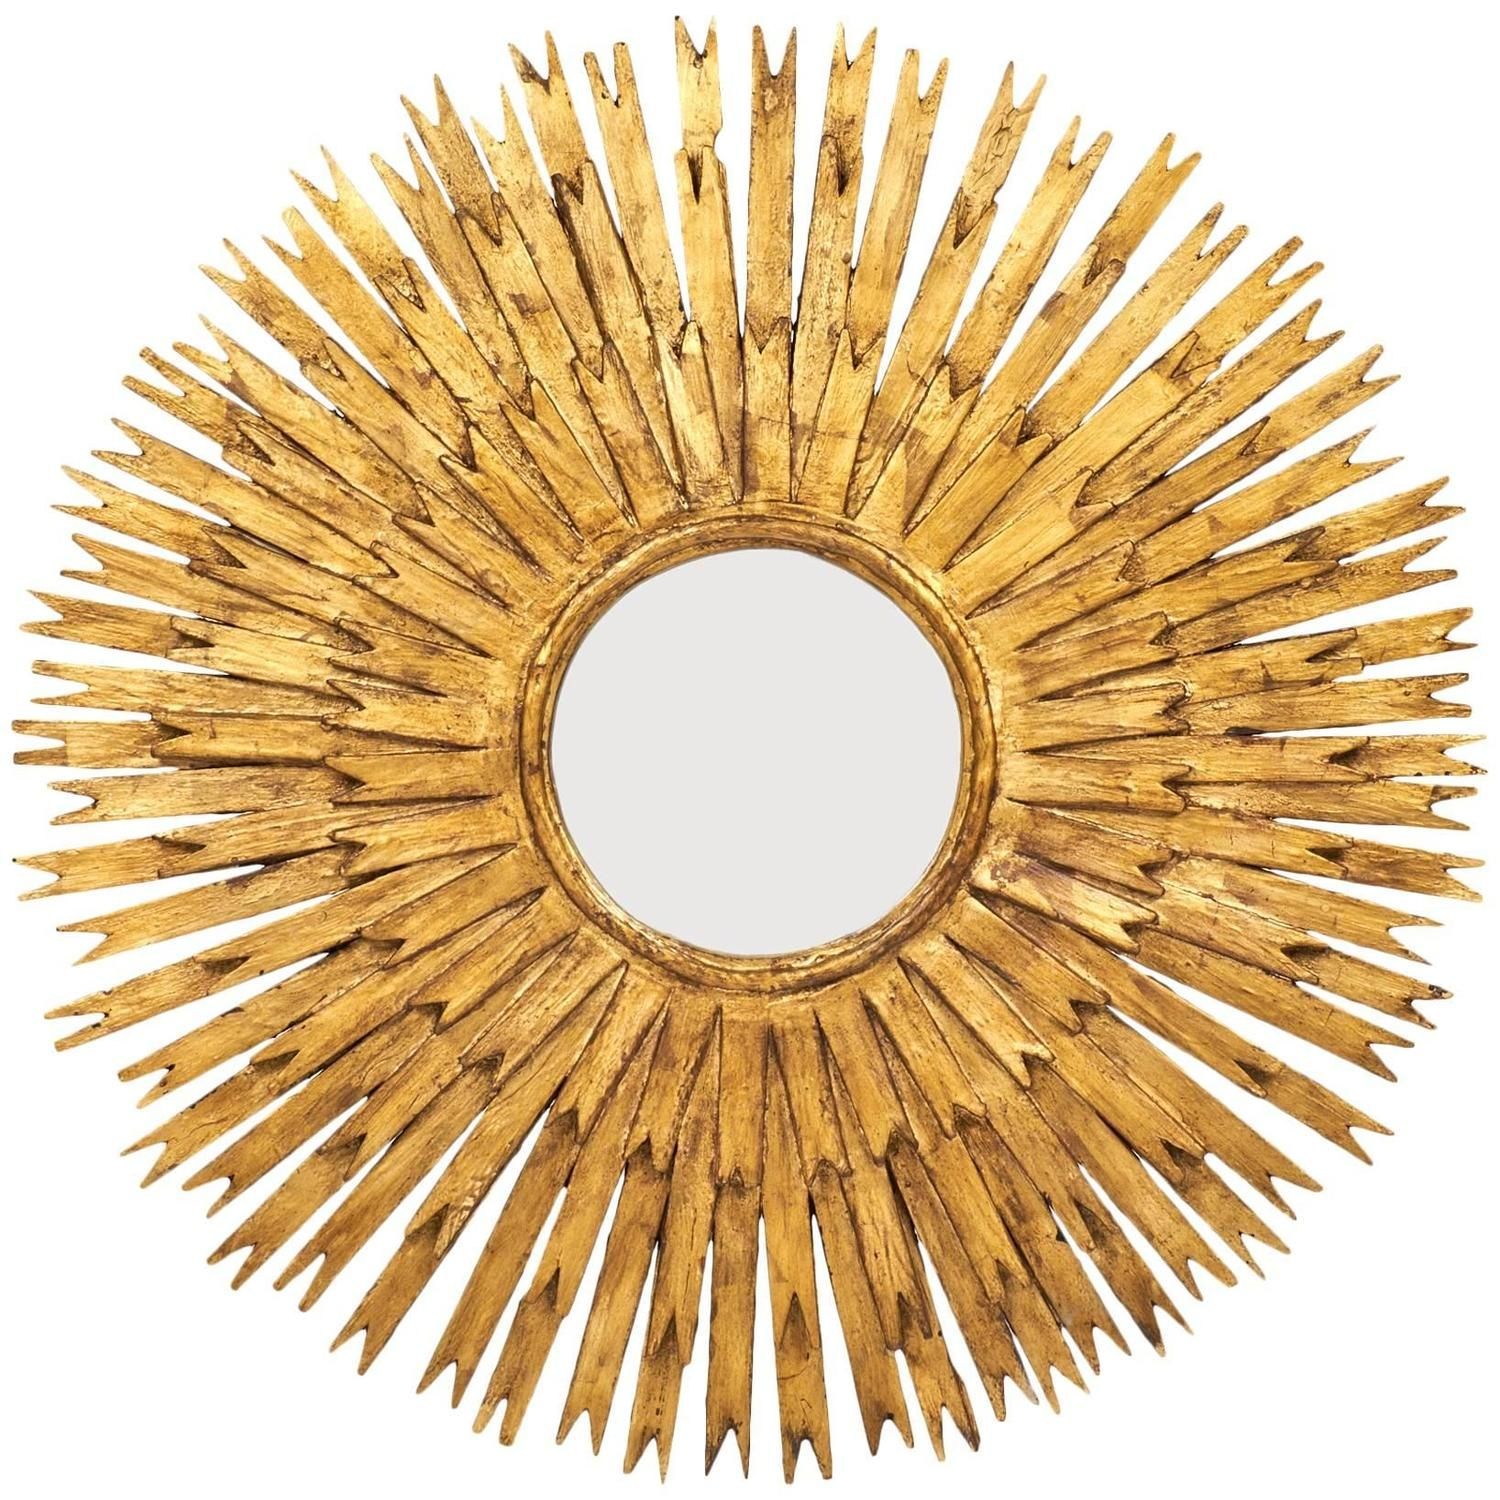 Vintage Large Gold Leaf Sunburst Mirror | Sunburst mirror, Leaves ...